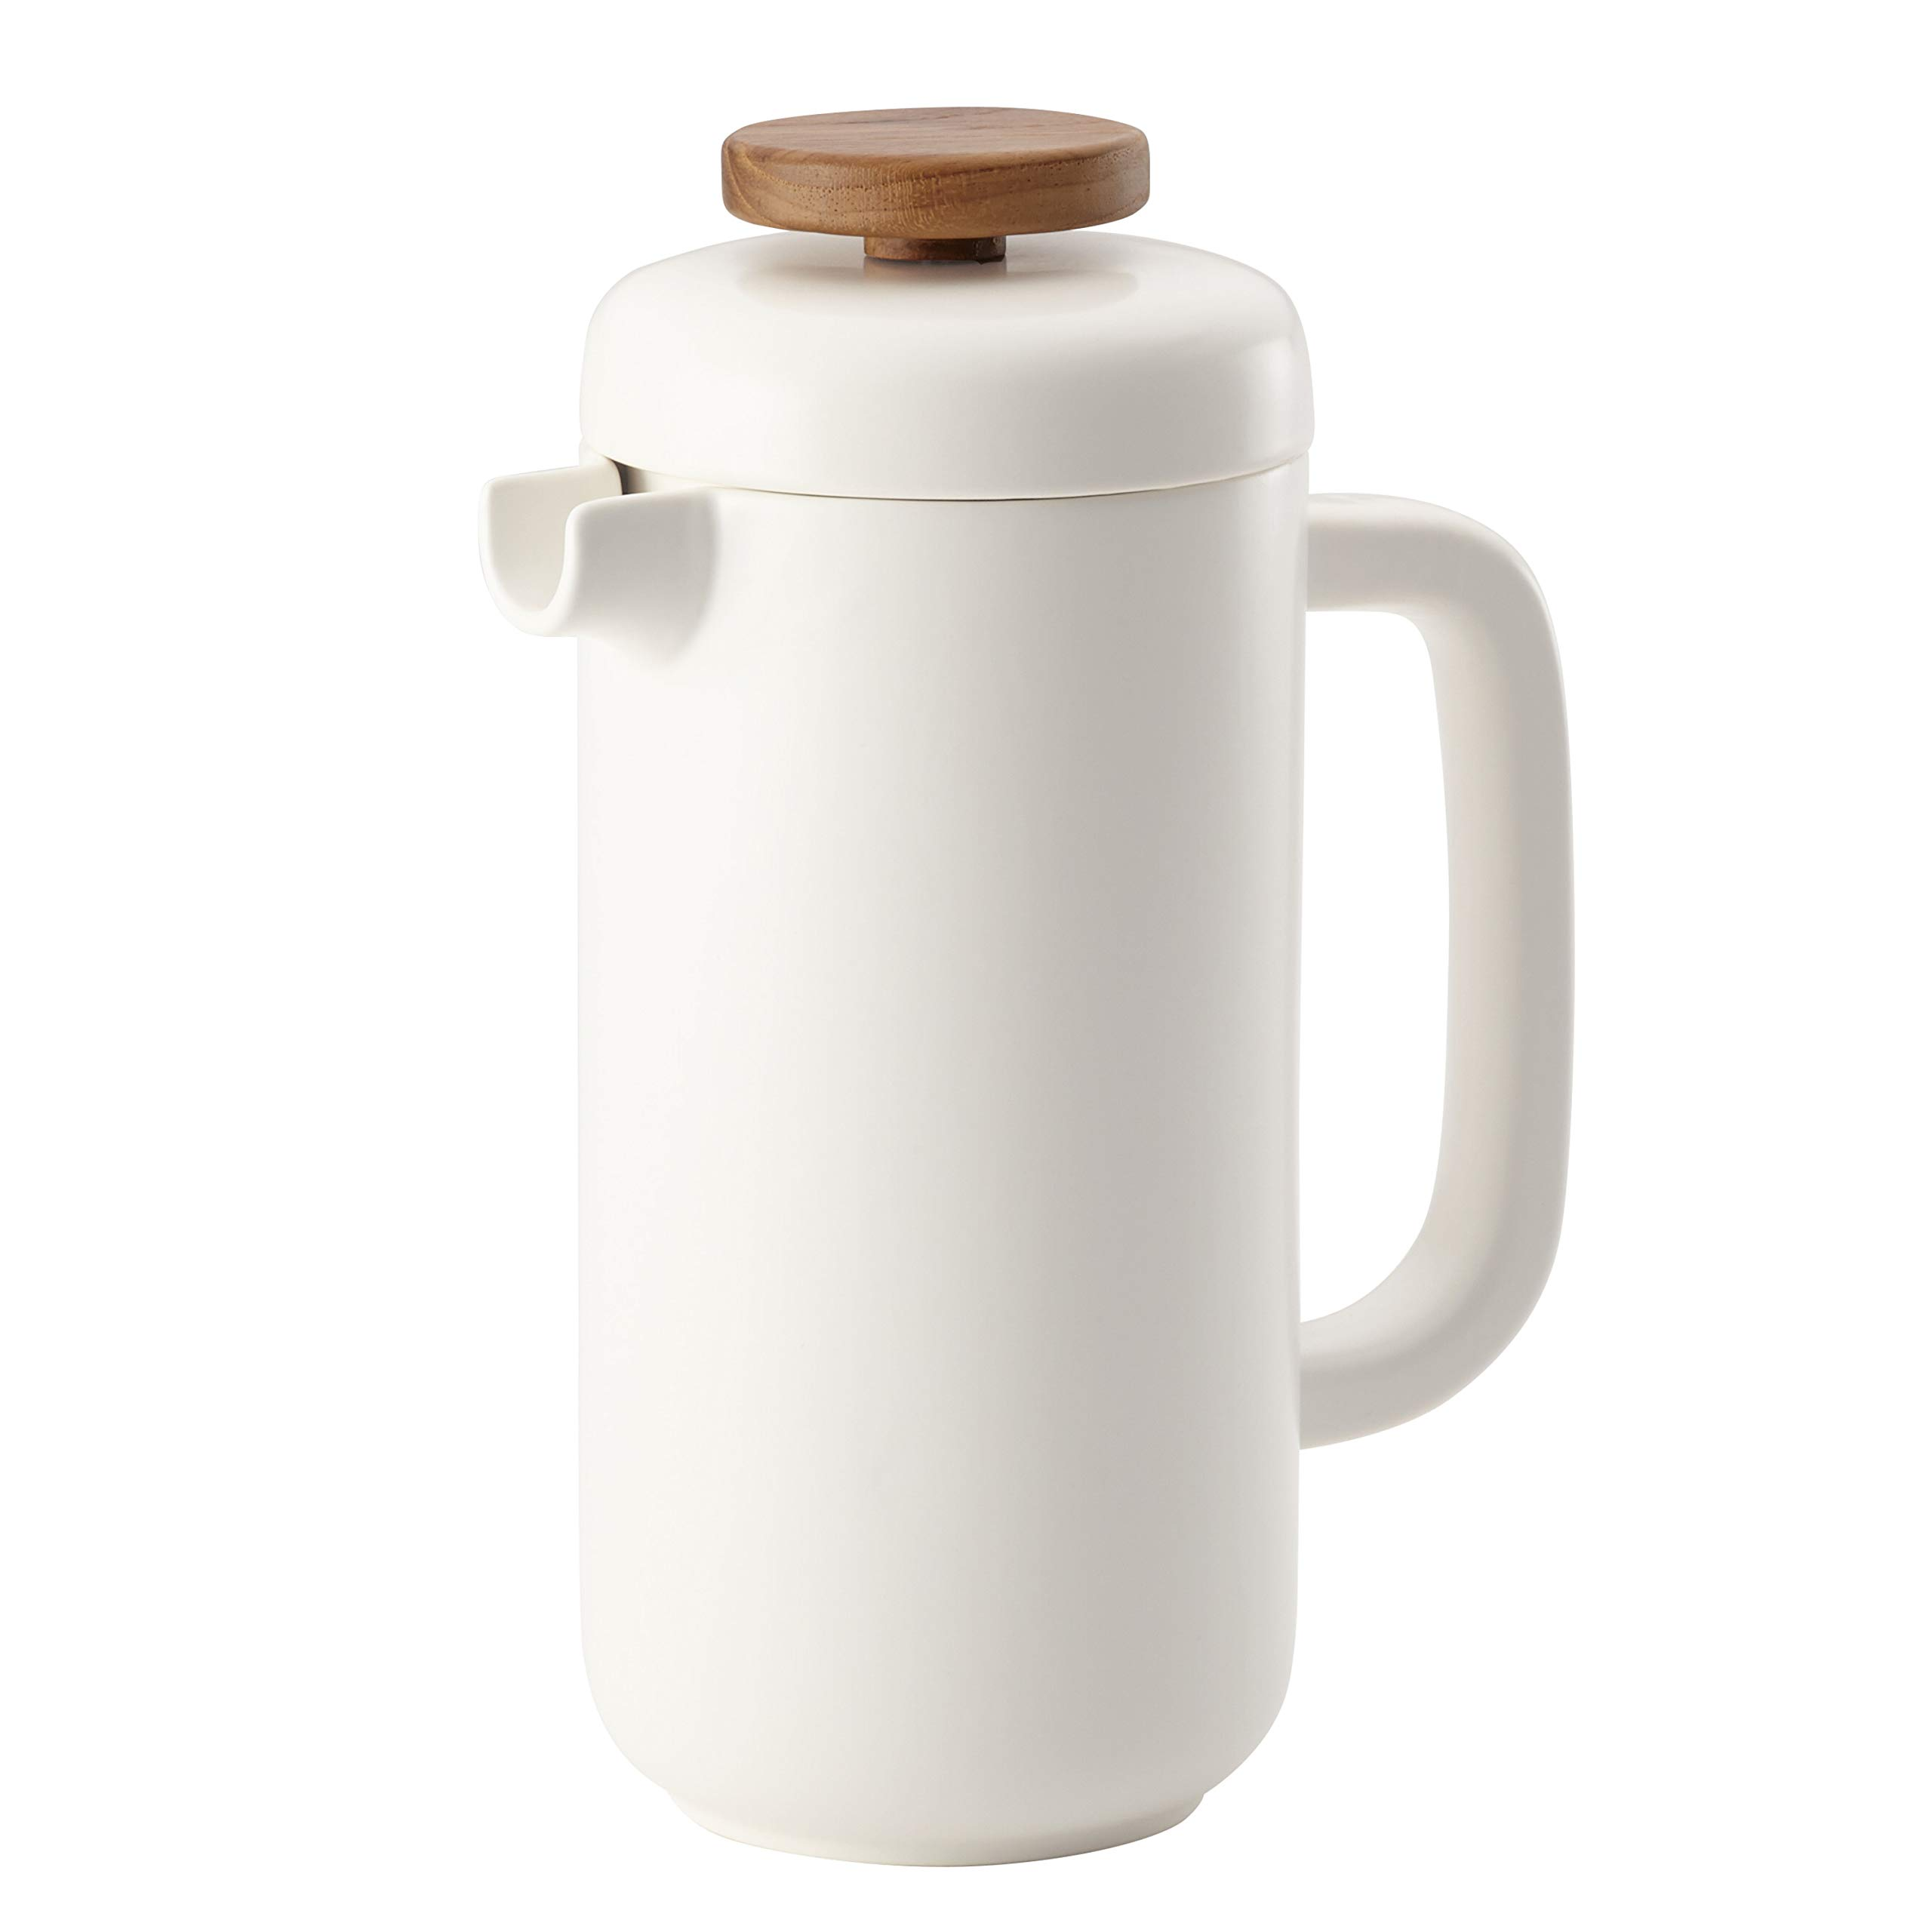 BonJour Ceramic Coffee and Tea 8-Demitasse-Cup Ceramic French Press, Matte White